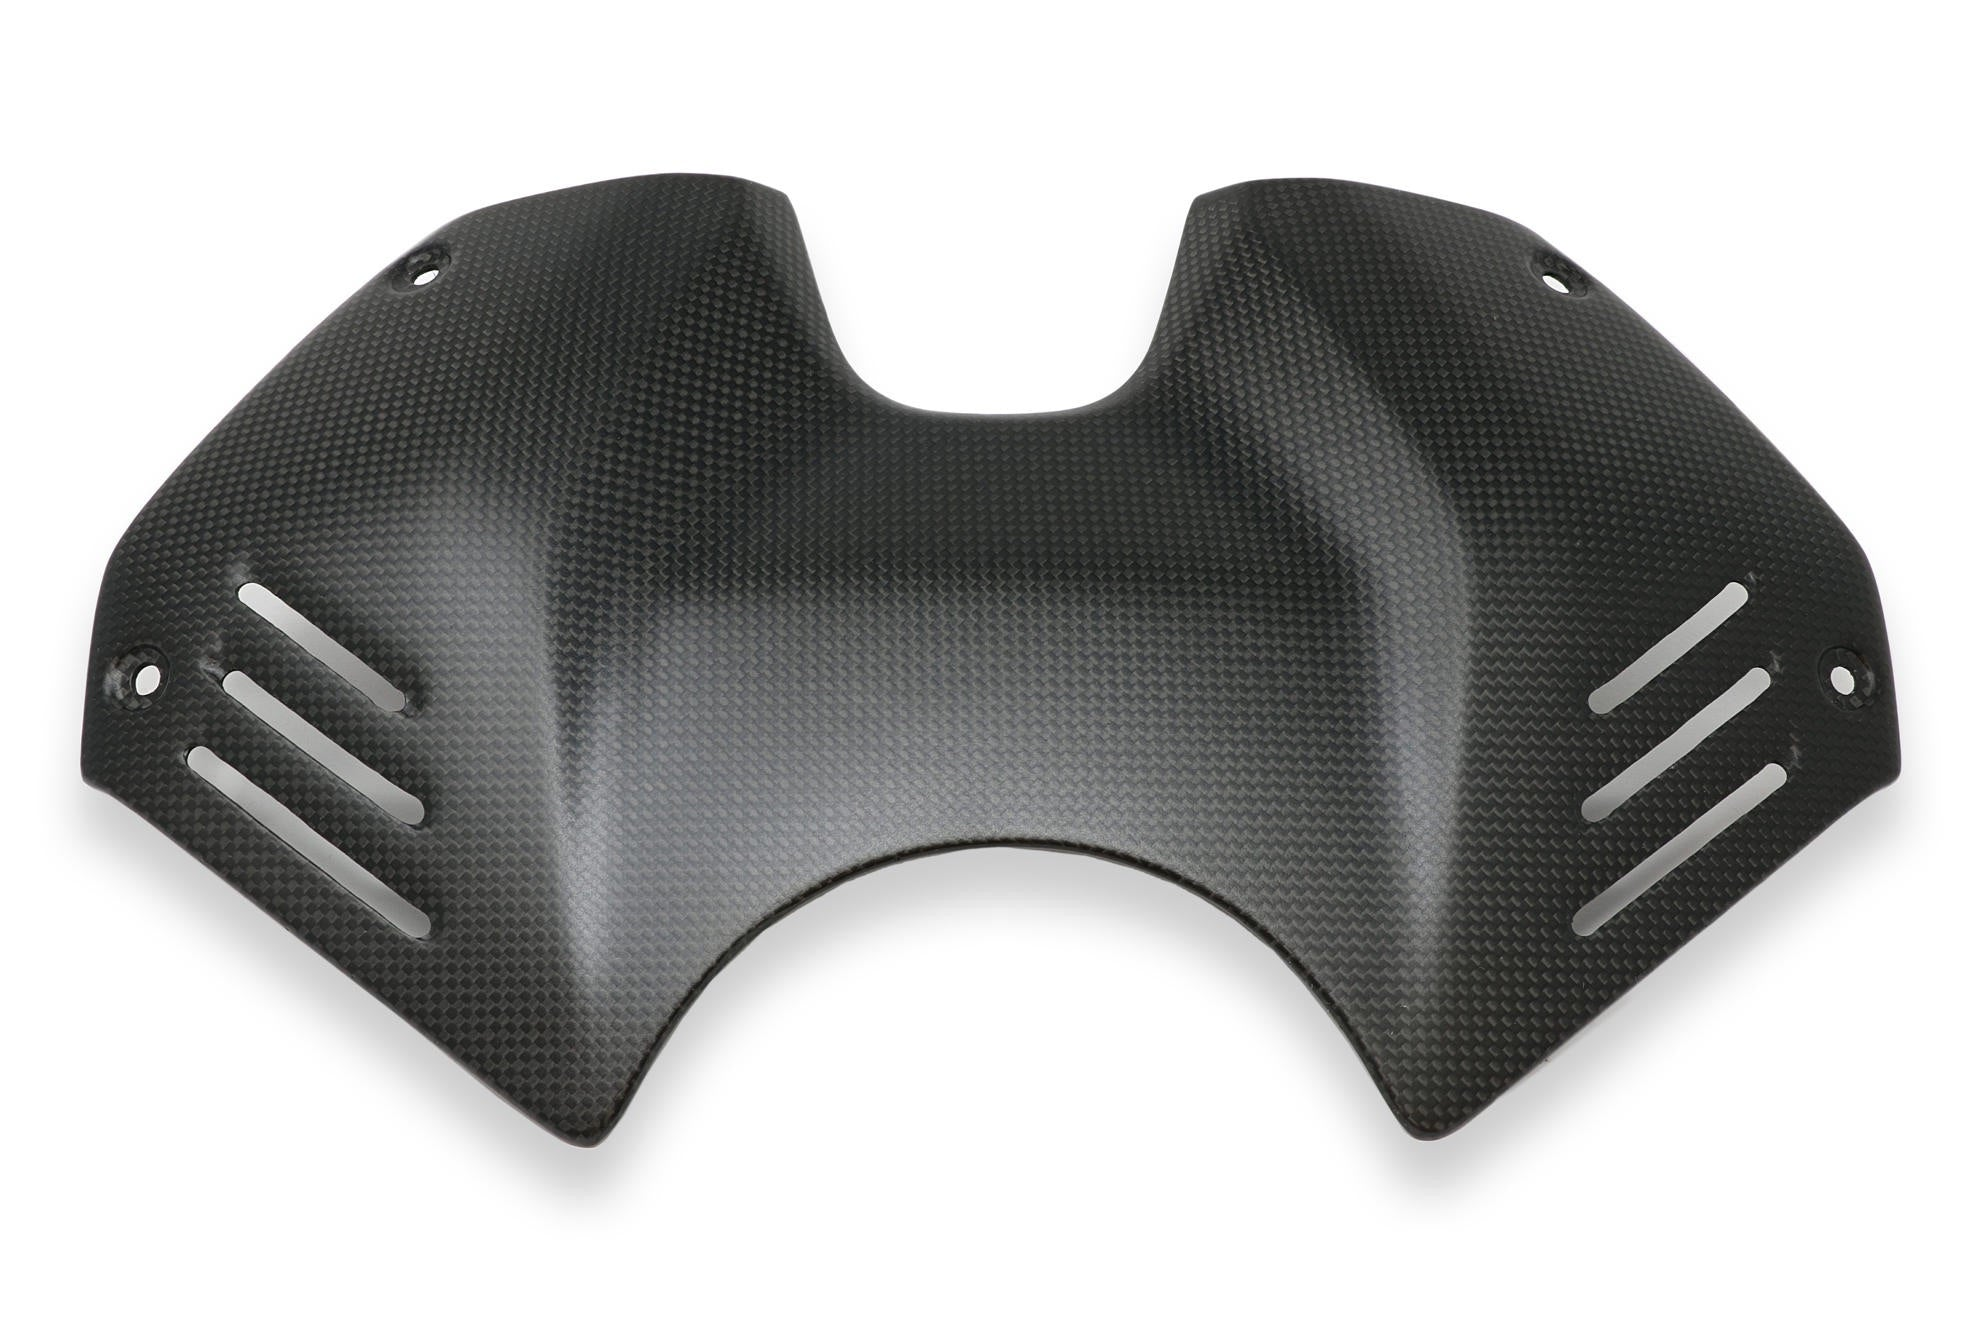 CNC Racing Carbon Fuel Cover - Panigale V4/S/R, Carbon Parts, CNC Racing - Averys Motorcycles